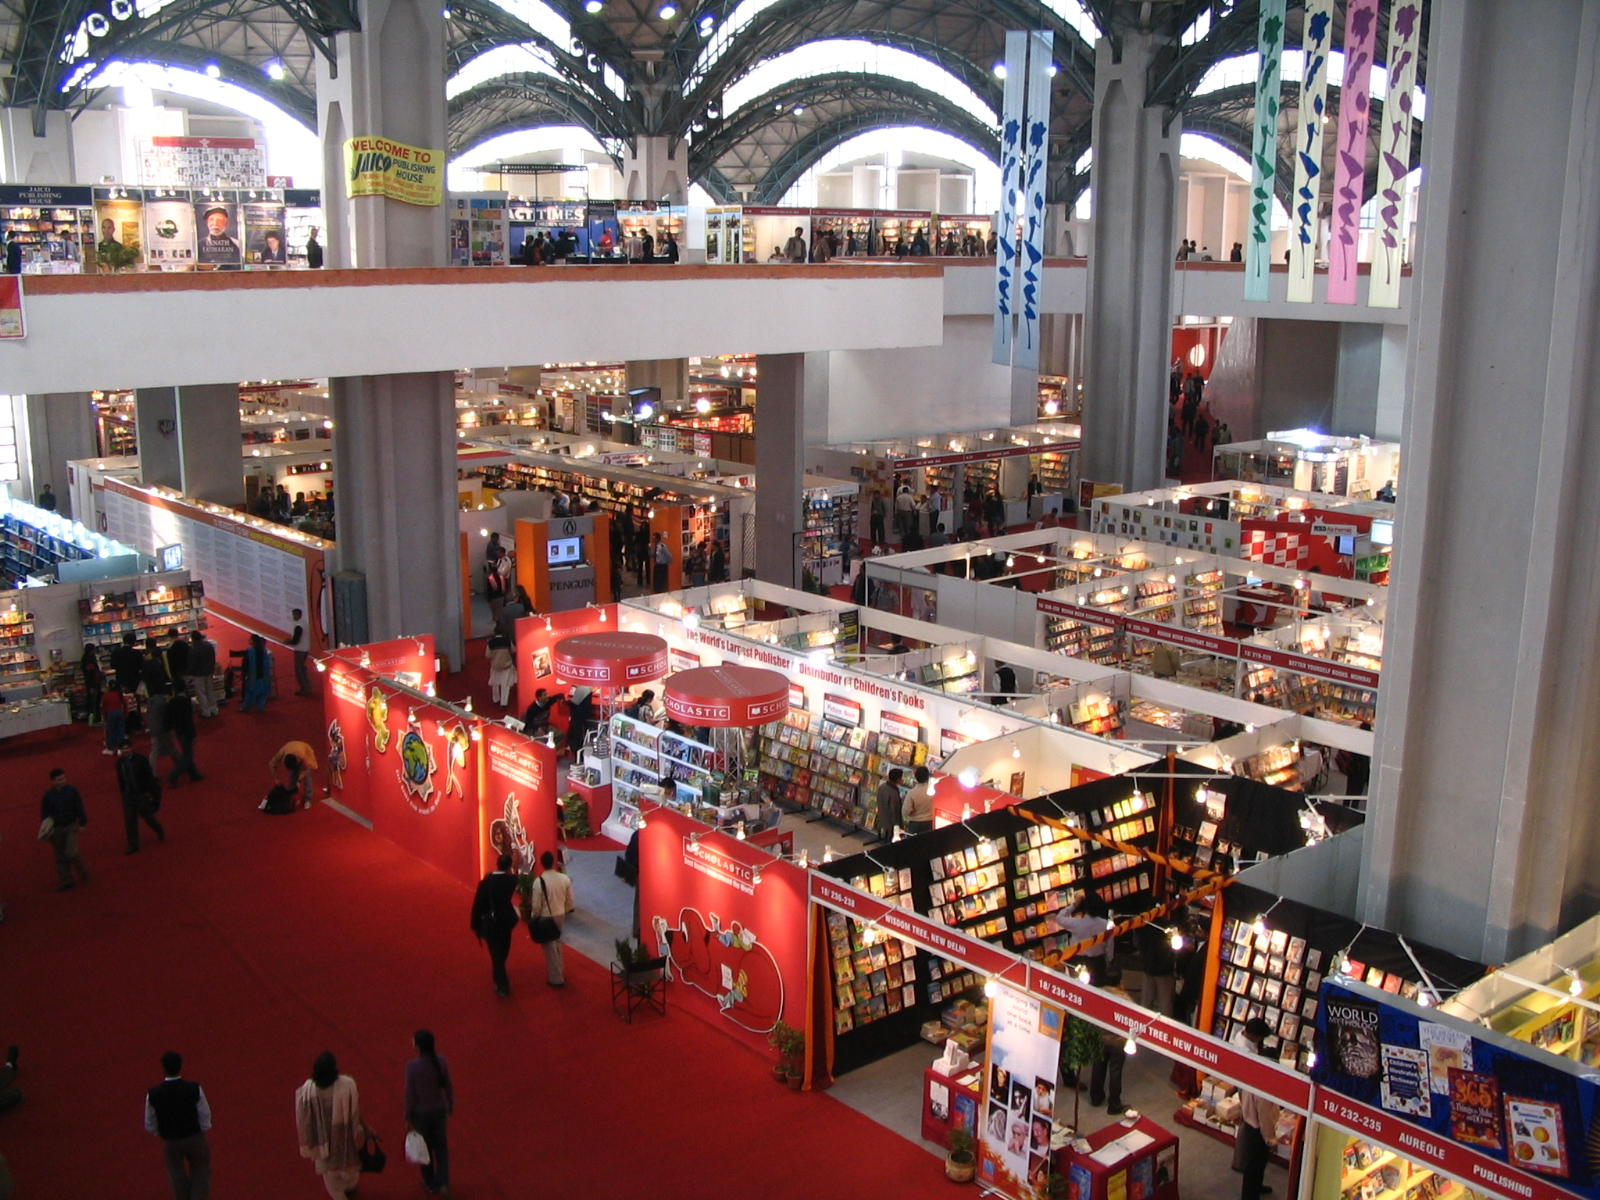 New Delhi World Book Fair (14th -22nd Feb, 2015)